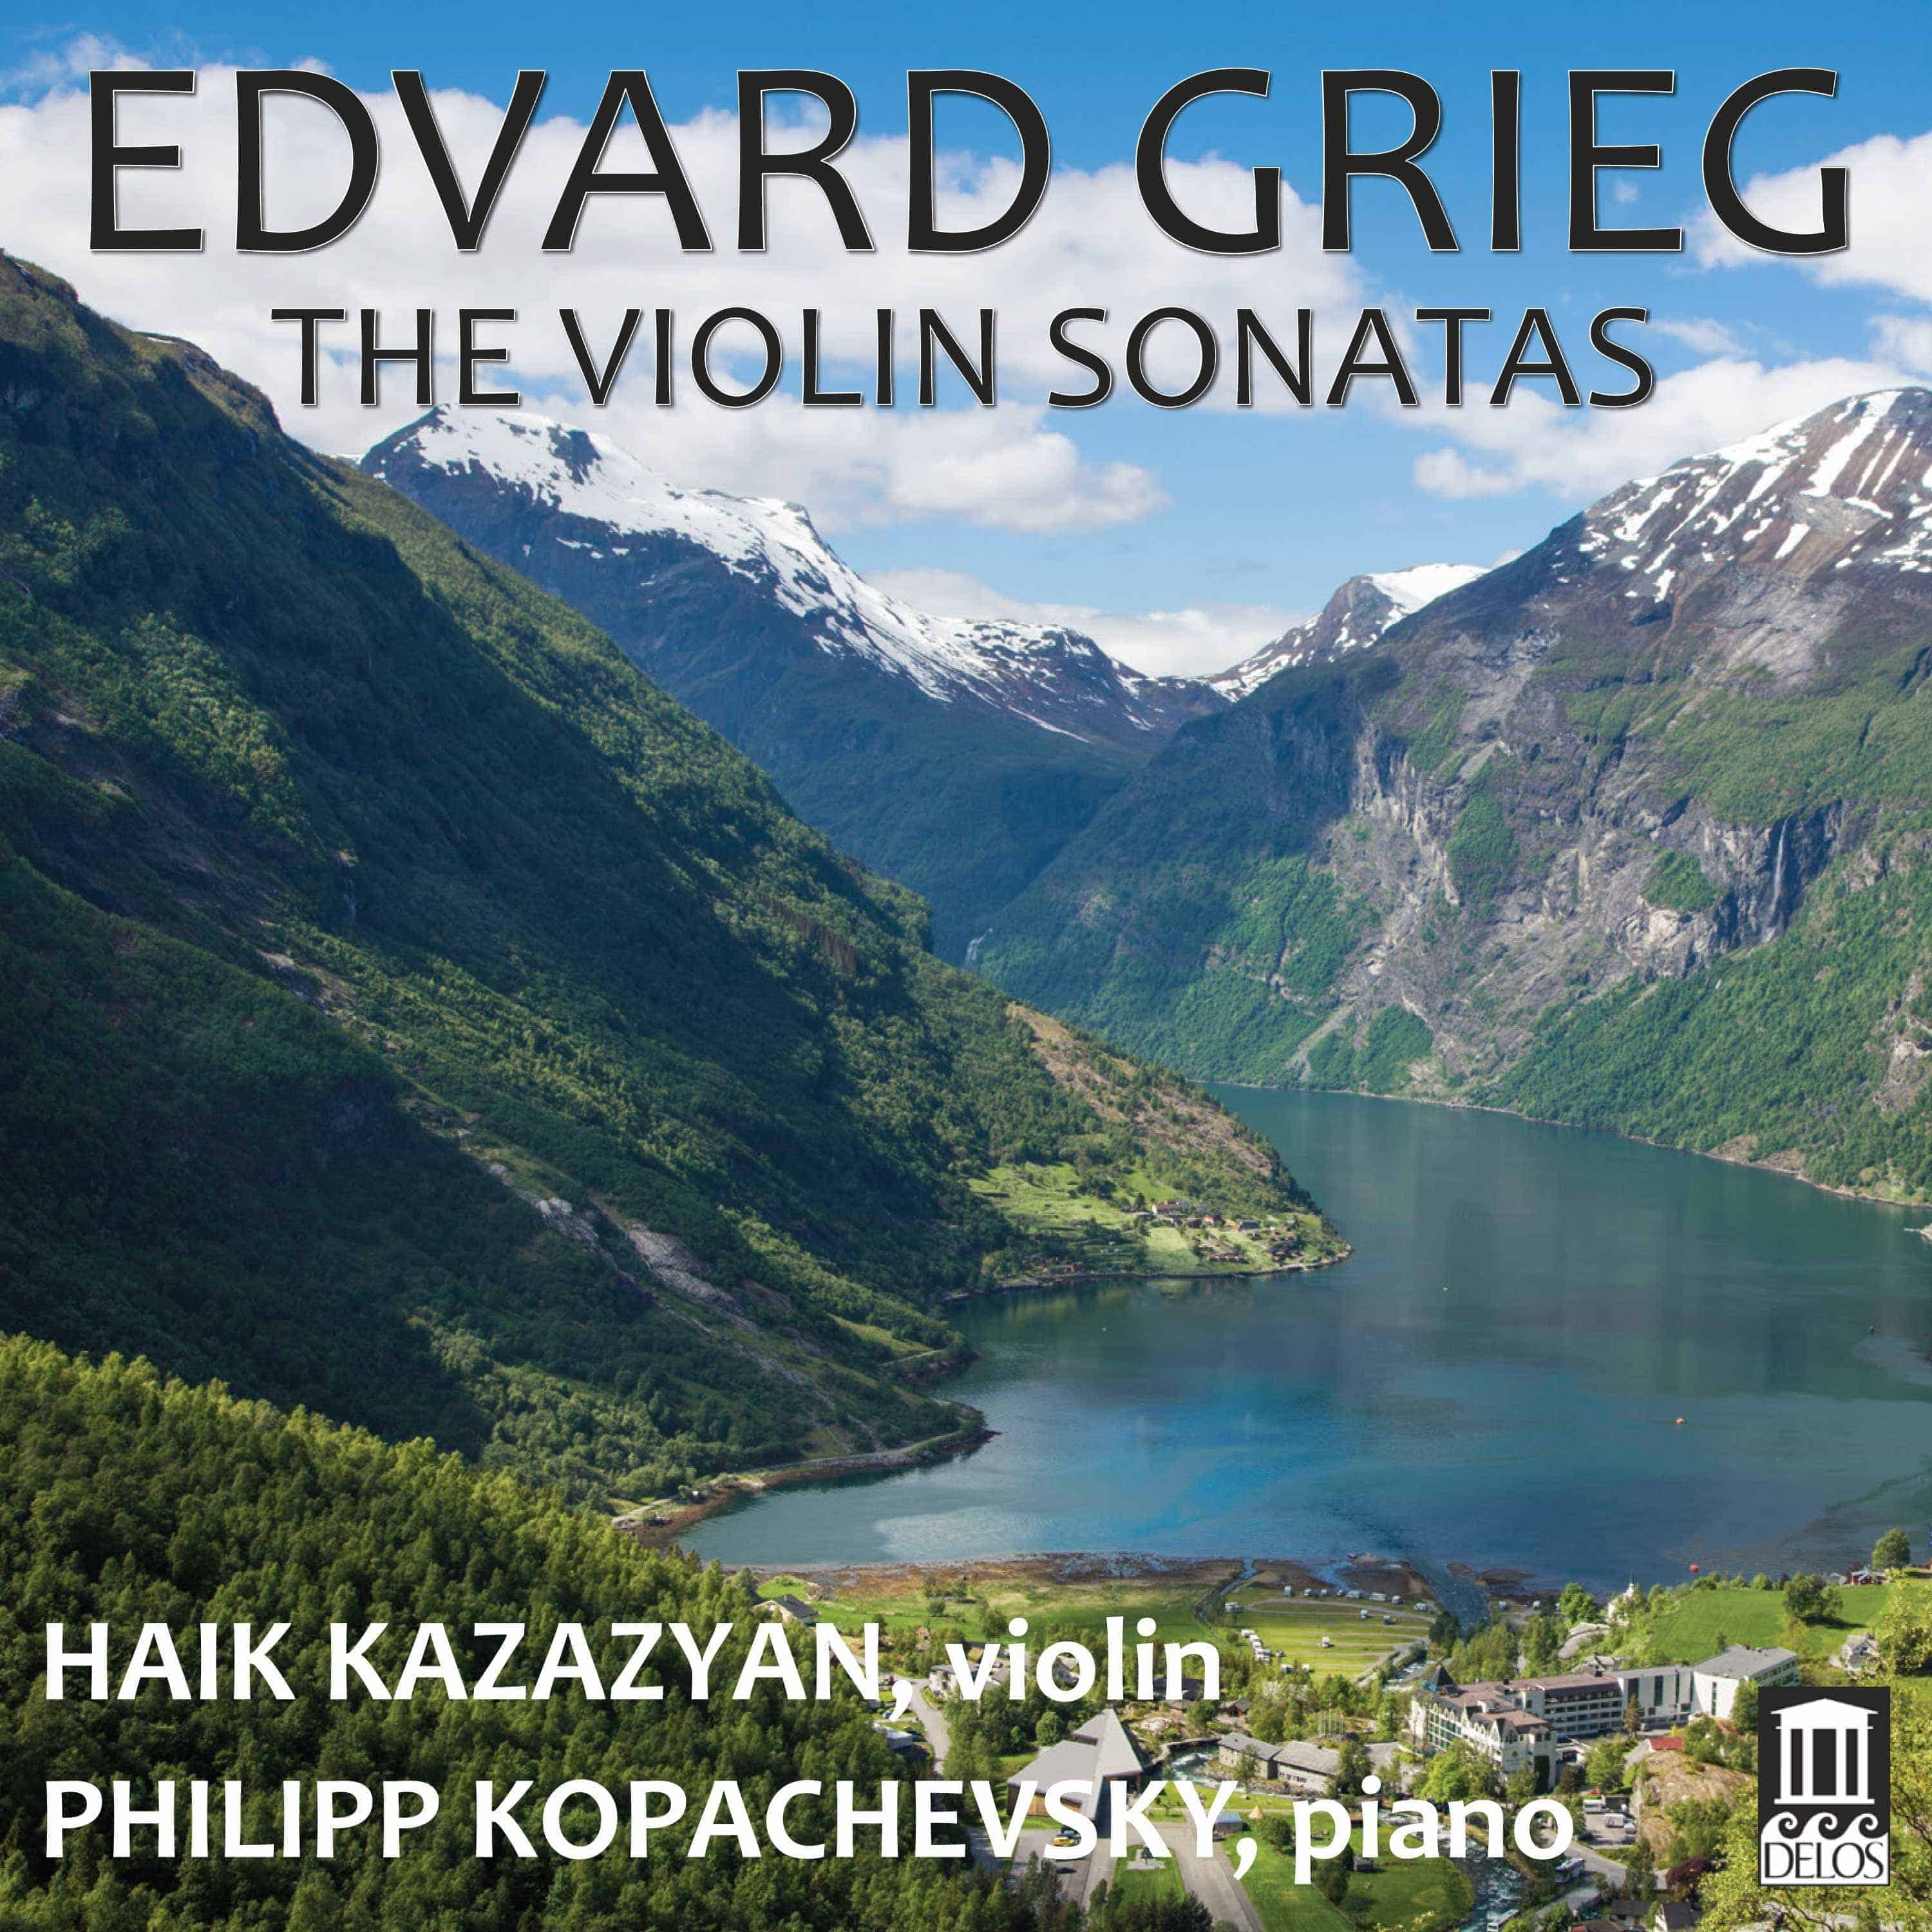 Edvard Grieg: The Violin Sonatas